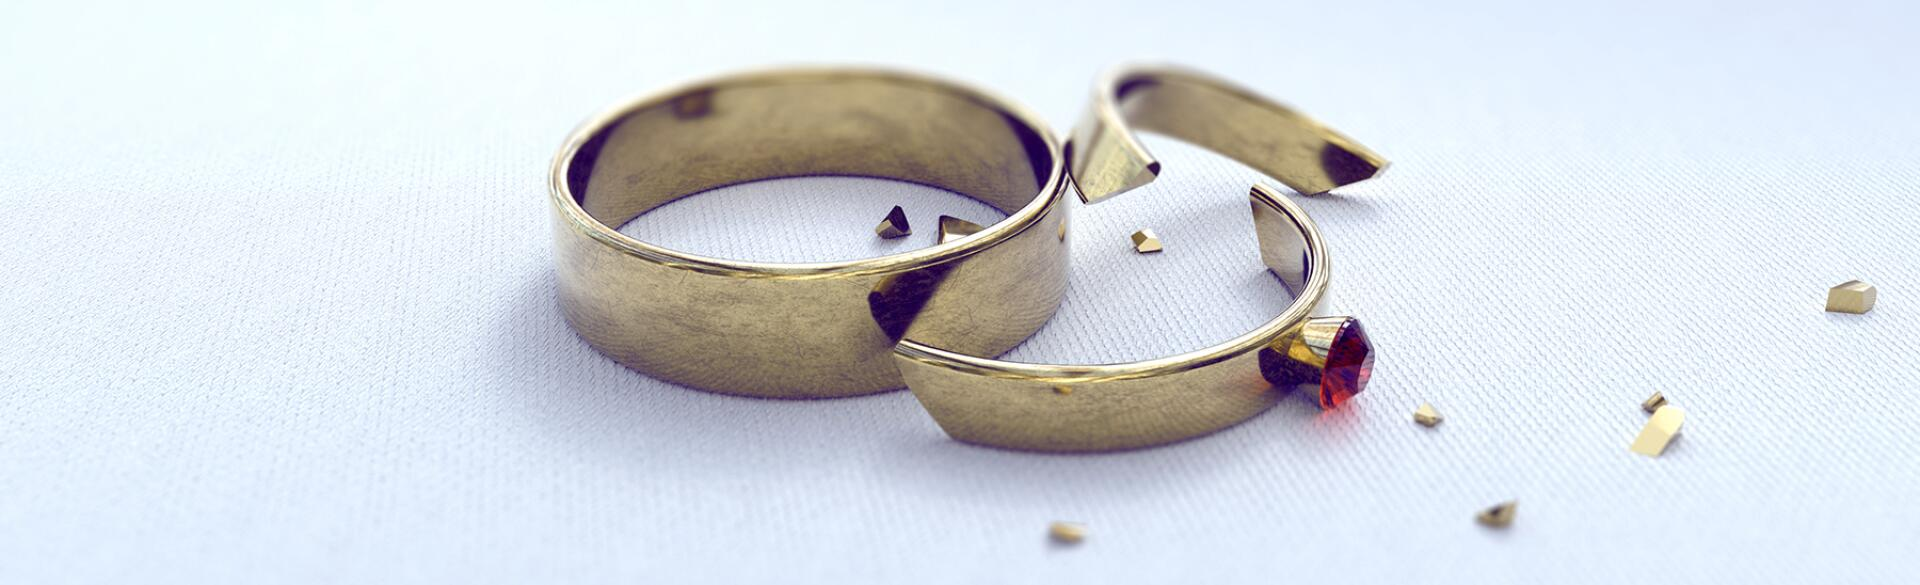 wedding band and cracked engagement ring on a white background